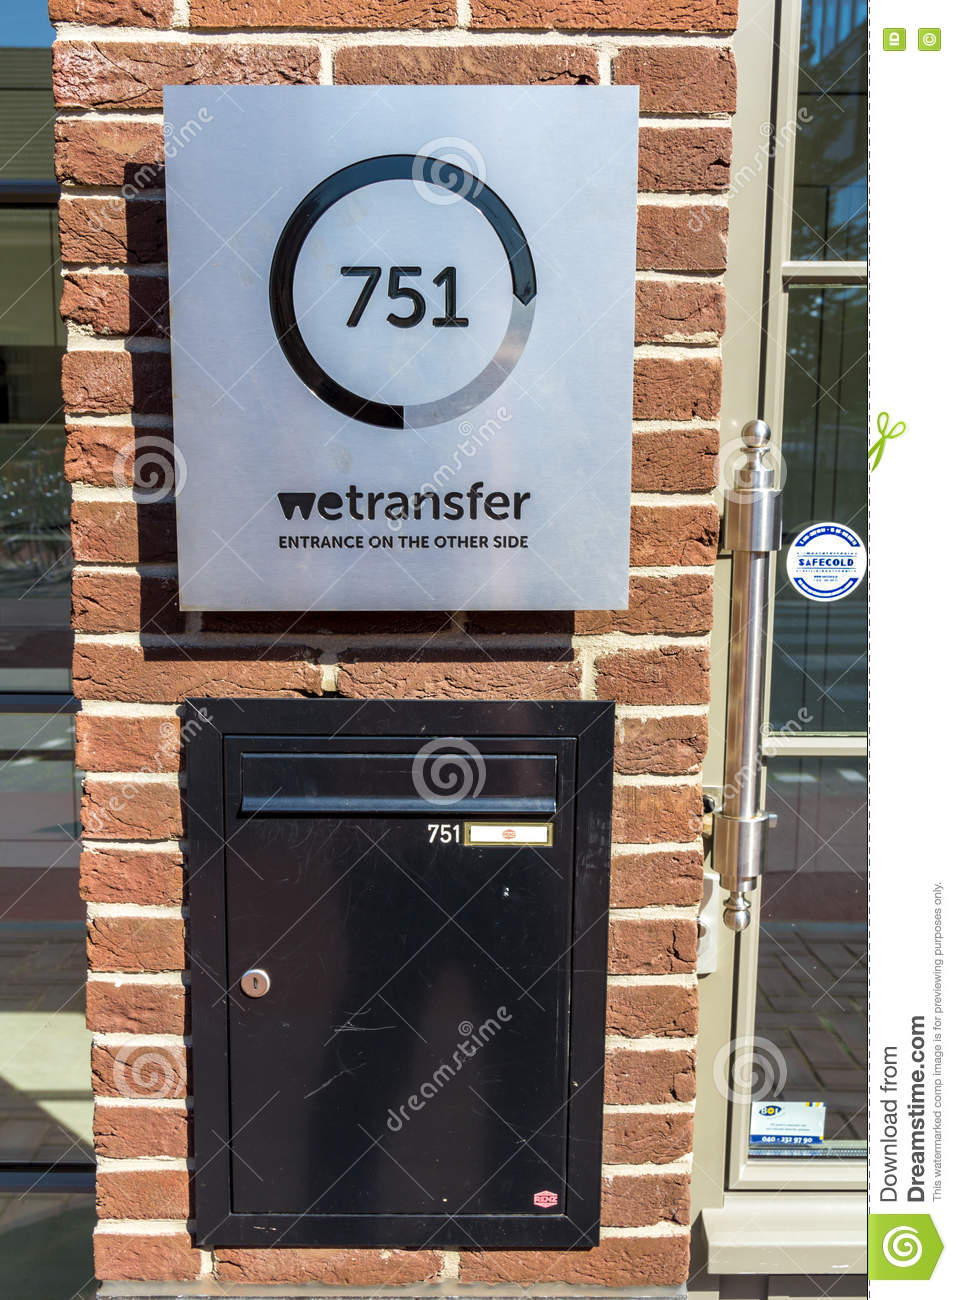 Wetransfer Headquarters Amsterdam Editorial Photo - Image of